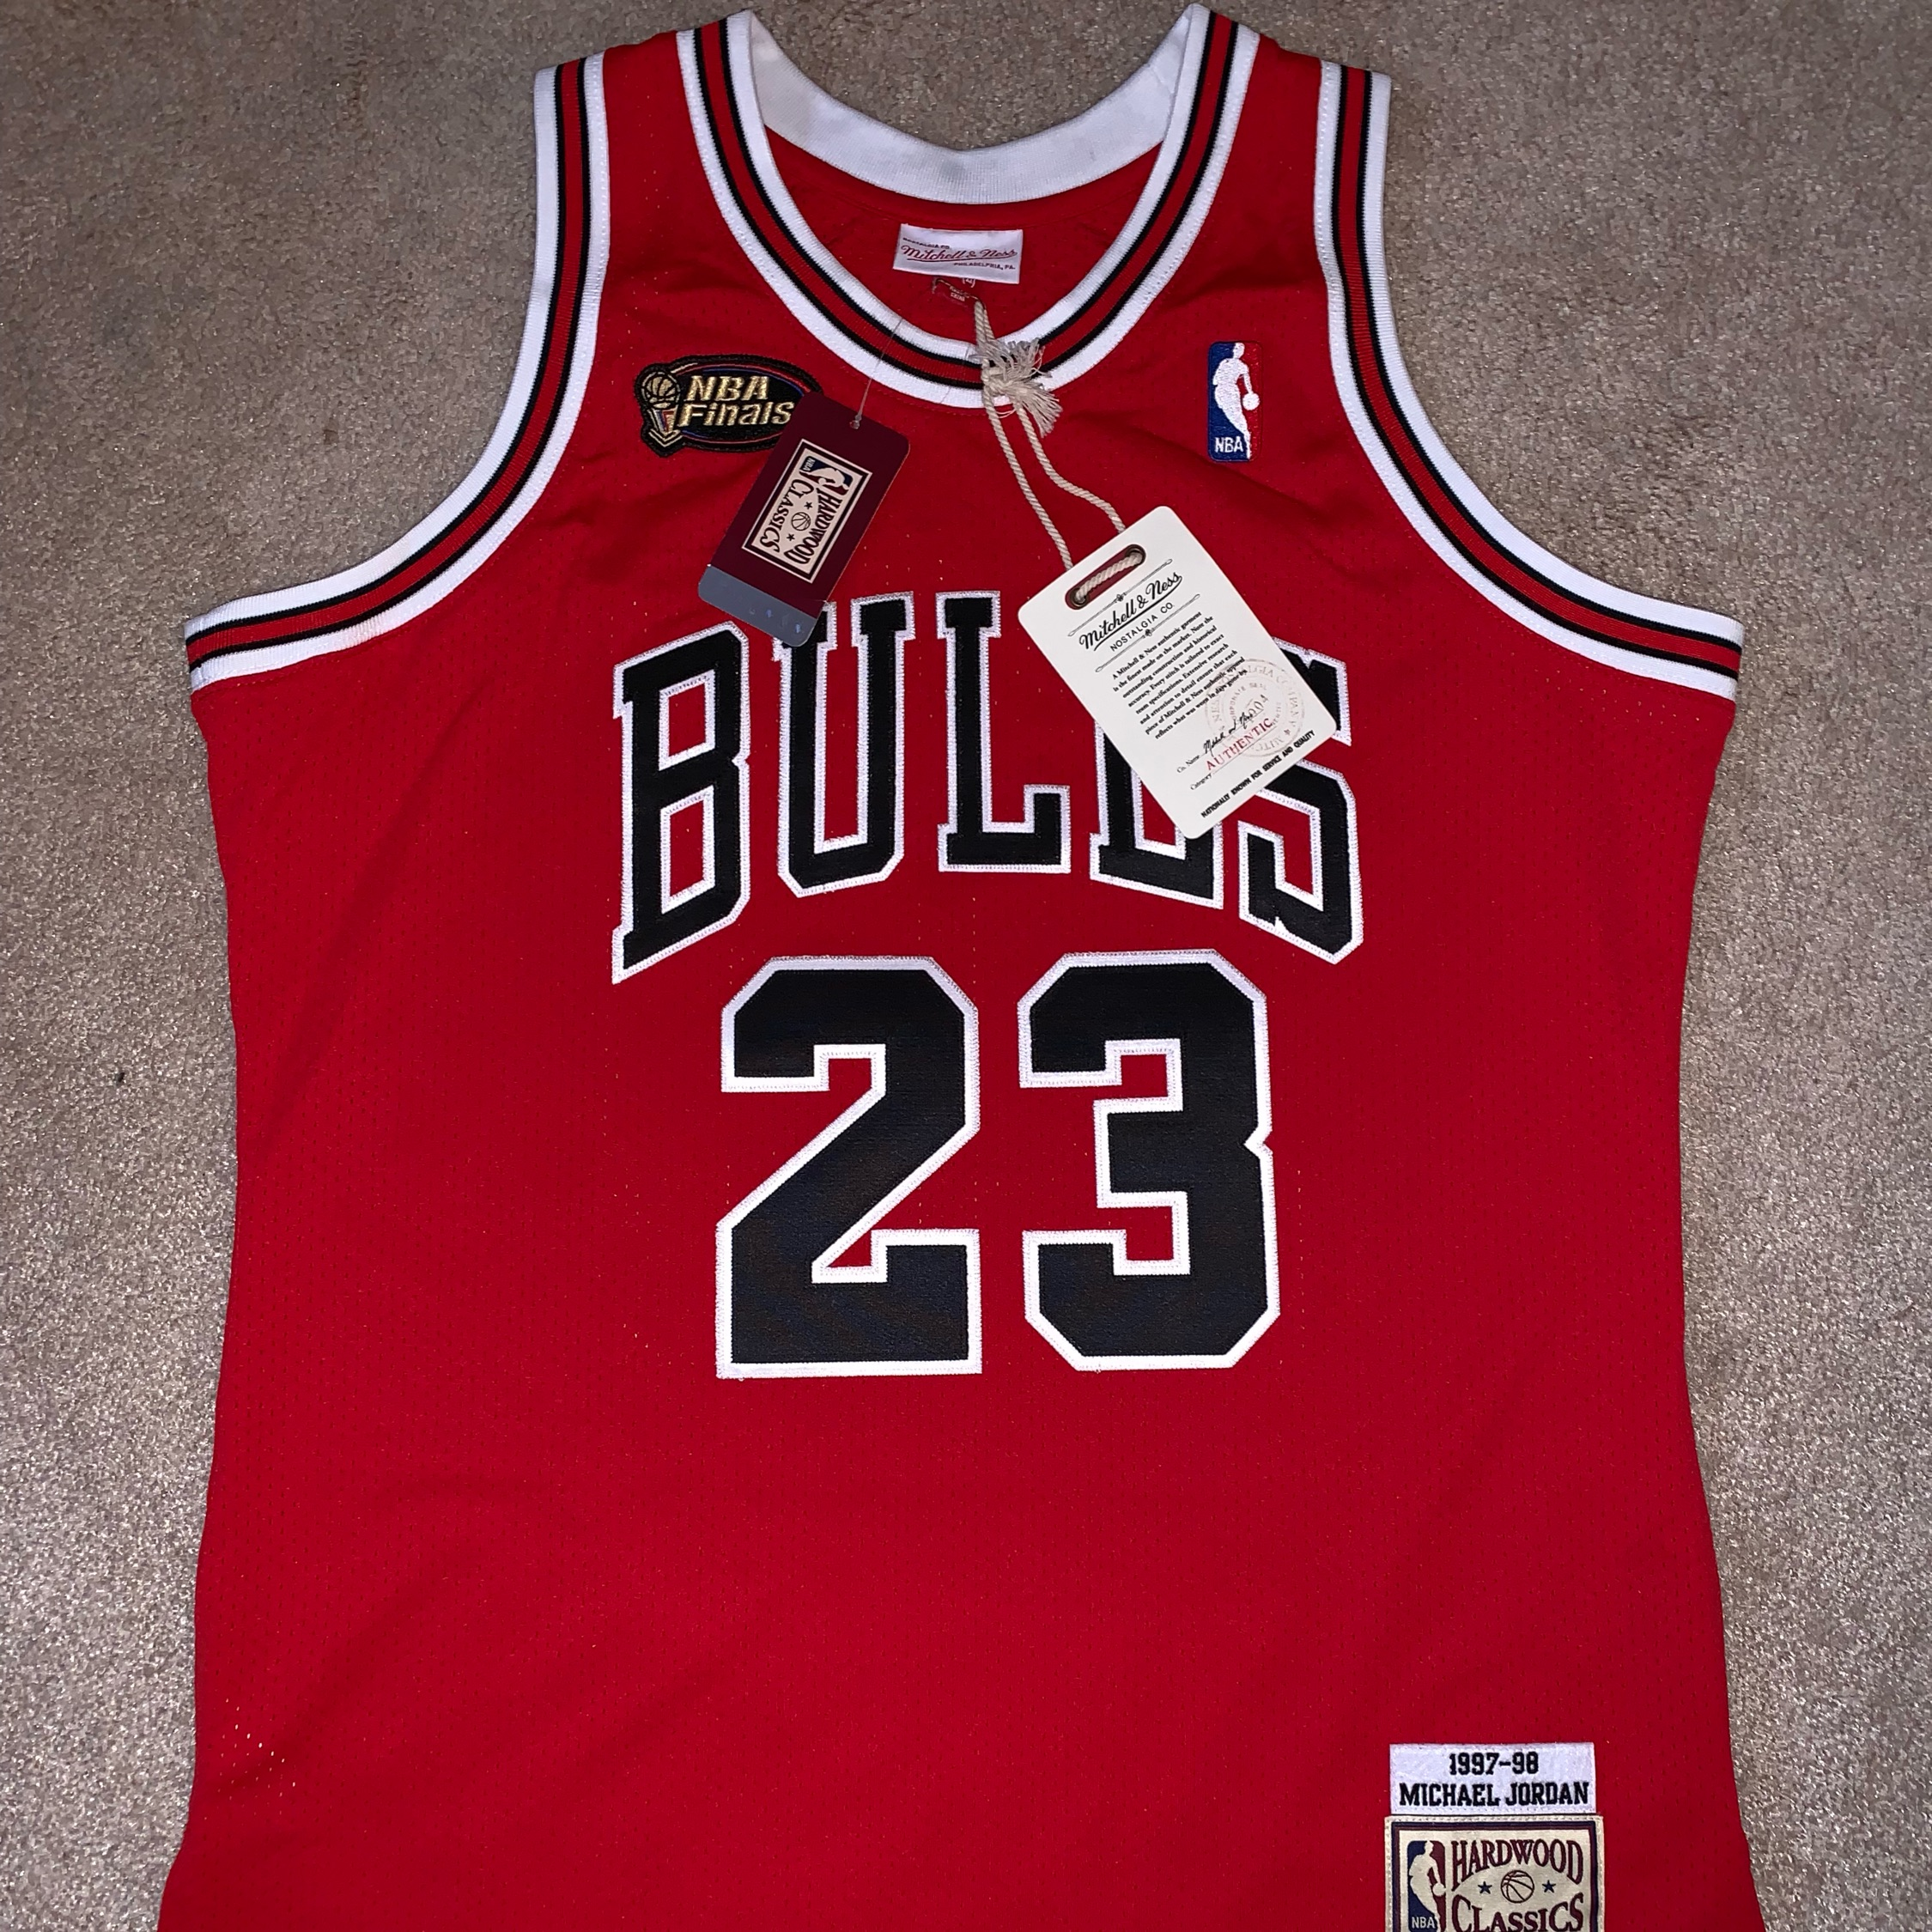 """newest collection 2493c ecfeb Mitchell & Ness '97 Finals Mj """"Last Shot"""" Jersey"""